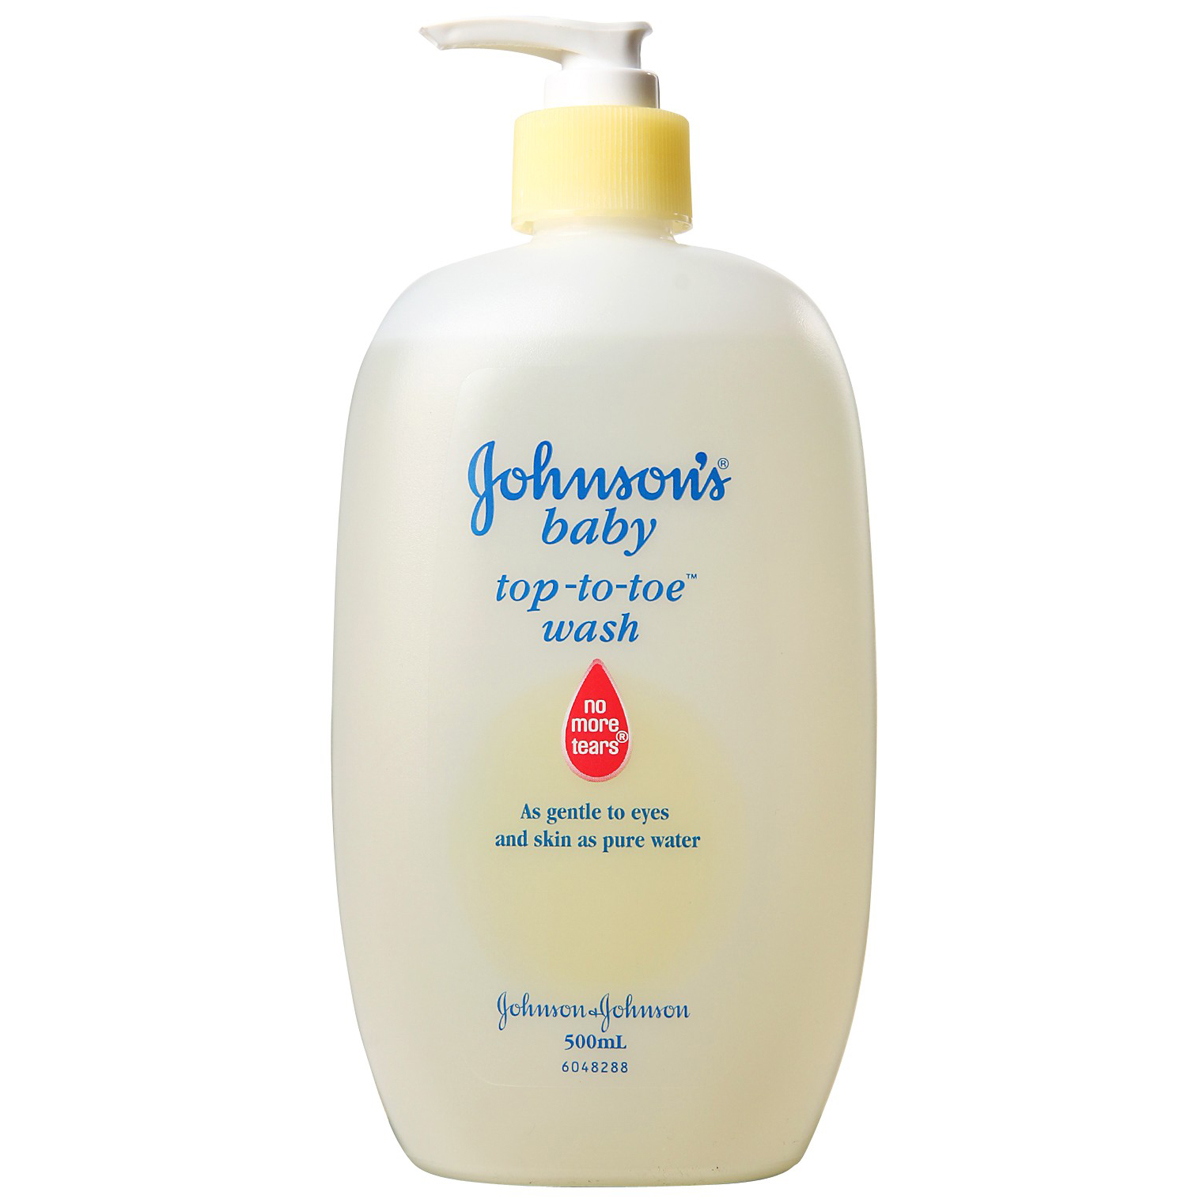 Tam goi Johnson's baby 500ml